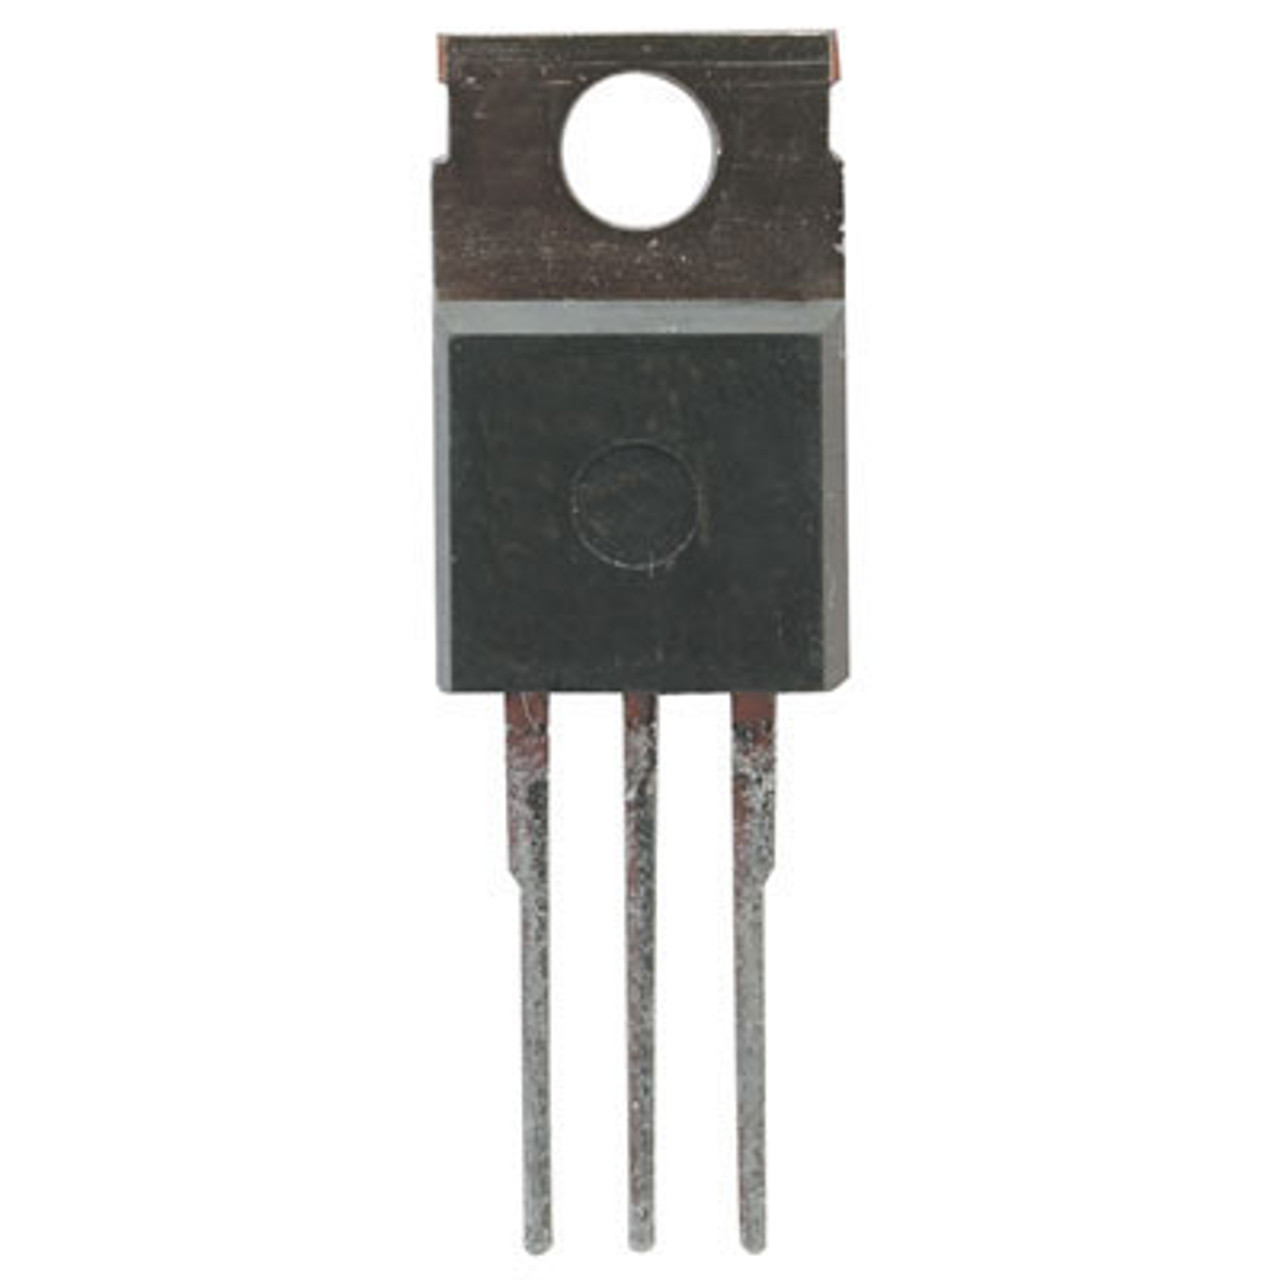 IC - LM7805 Voltage Regulator 5V